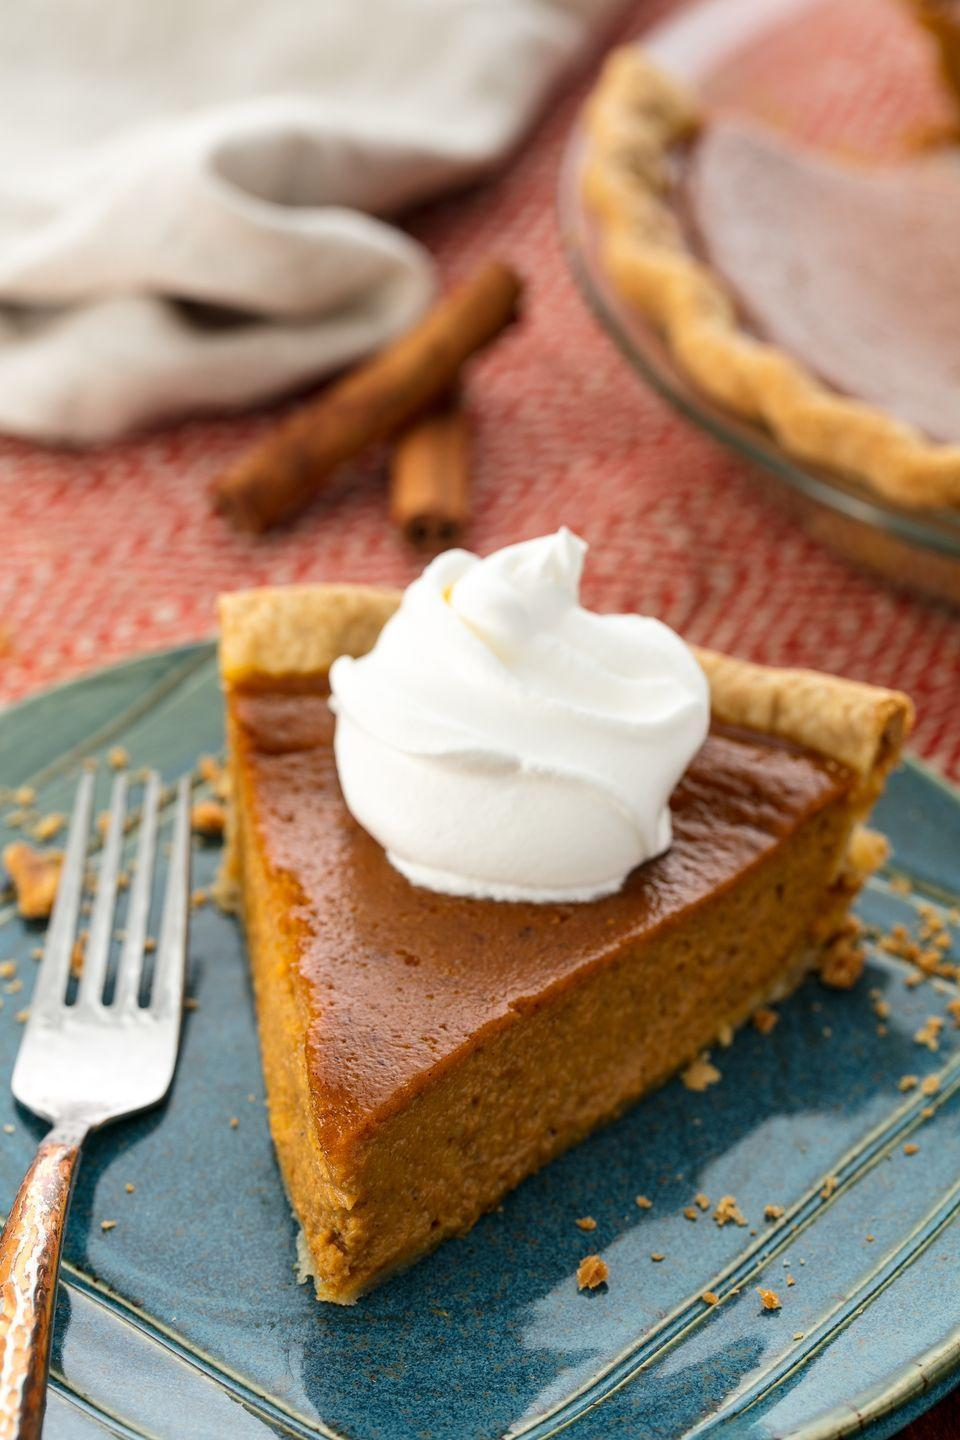 """<p>A fall staple.</p><p>Get the recipe from <a href=""""https://www.delish.com/cooking/recipe-ideas/recipes/a55688/easy-homemade-pumpkin-pie-recipe-from-scratch/"""" rel=""""nofollow noopener"""" target=""""_blank"""" data-ylk=""""slk:Delish"""" class=""""link rapid-noclick-resp"""">Delish</a>.</p>"""